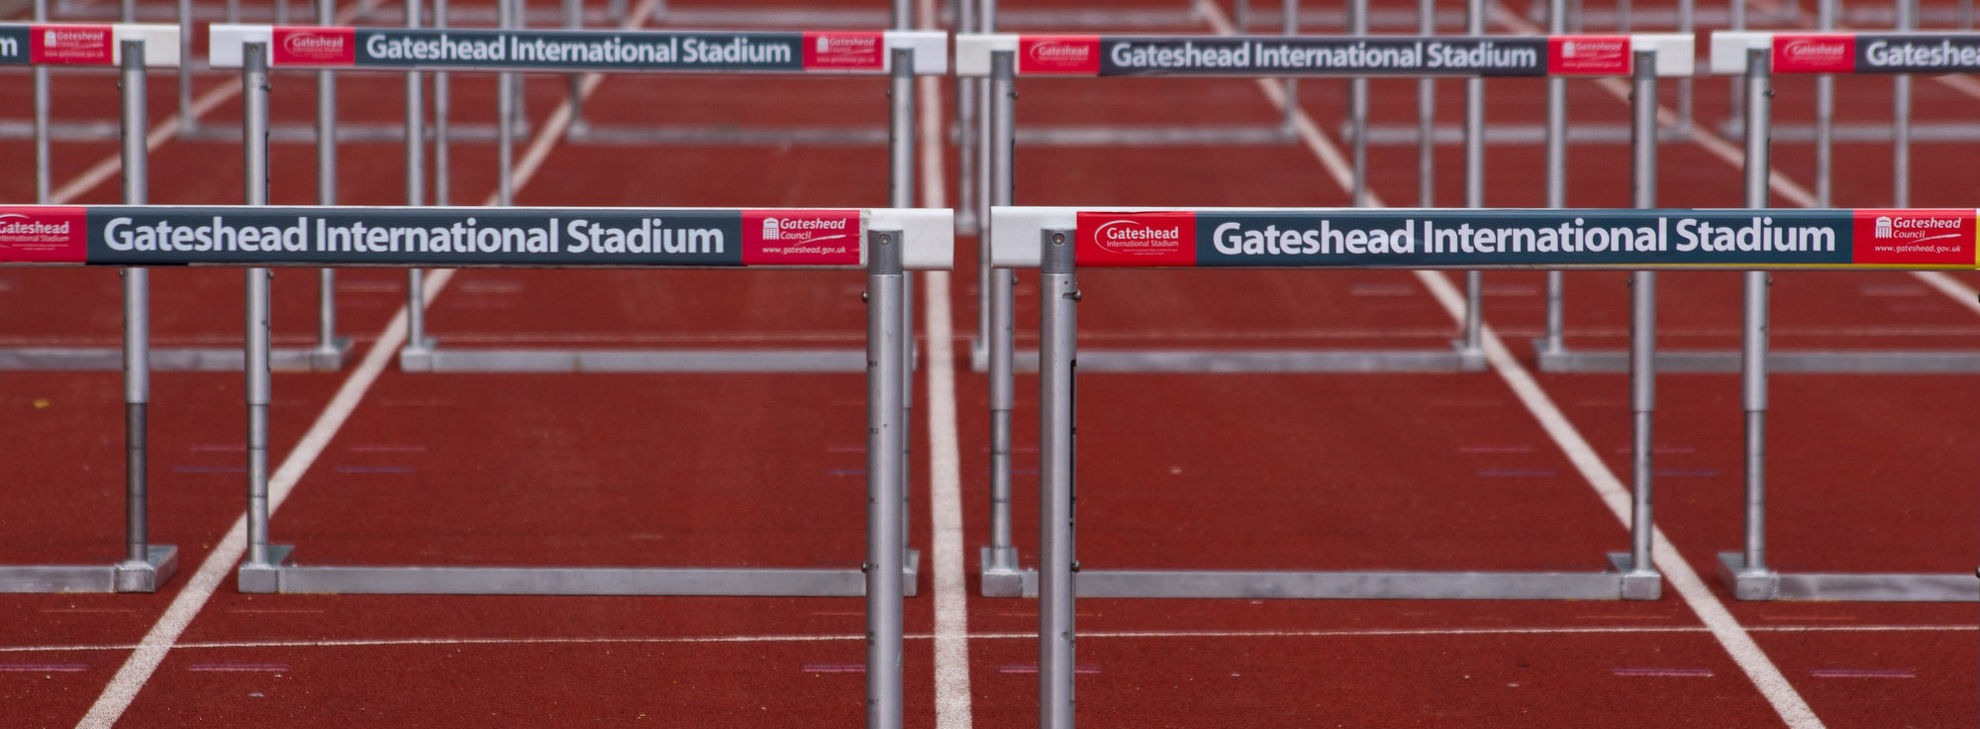 Explore Gateshead International Stadium